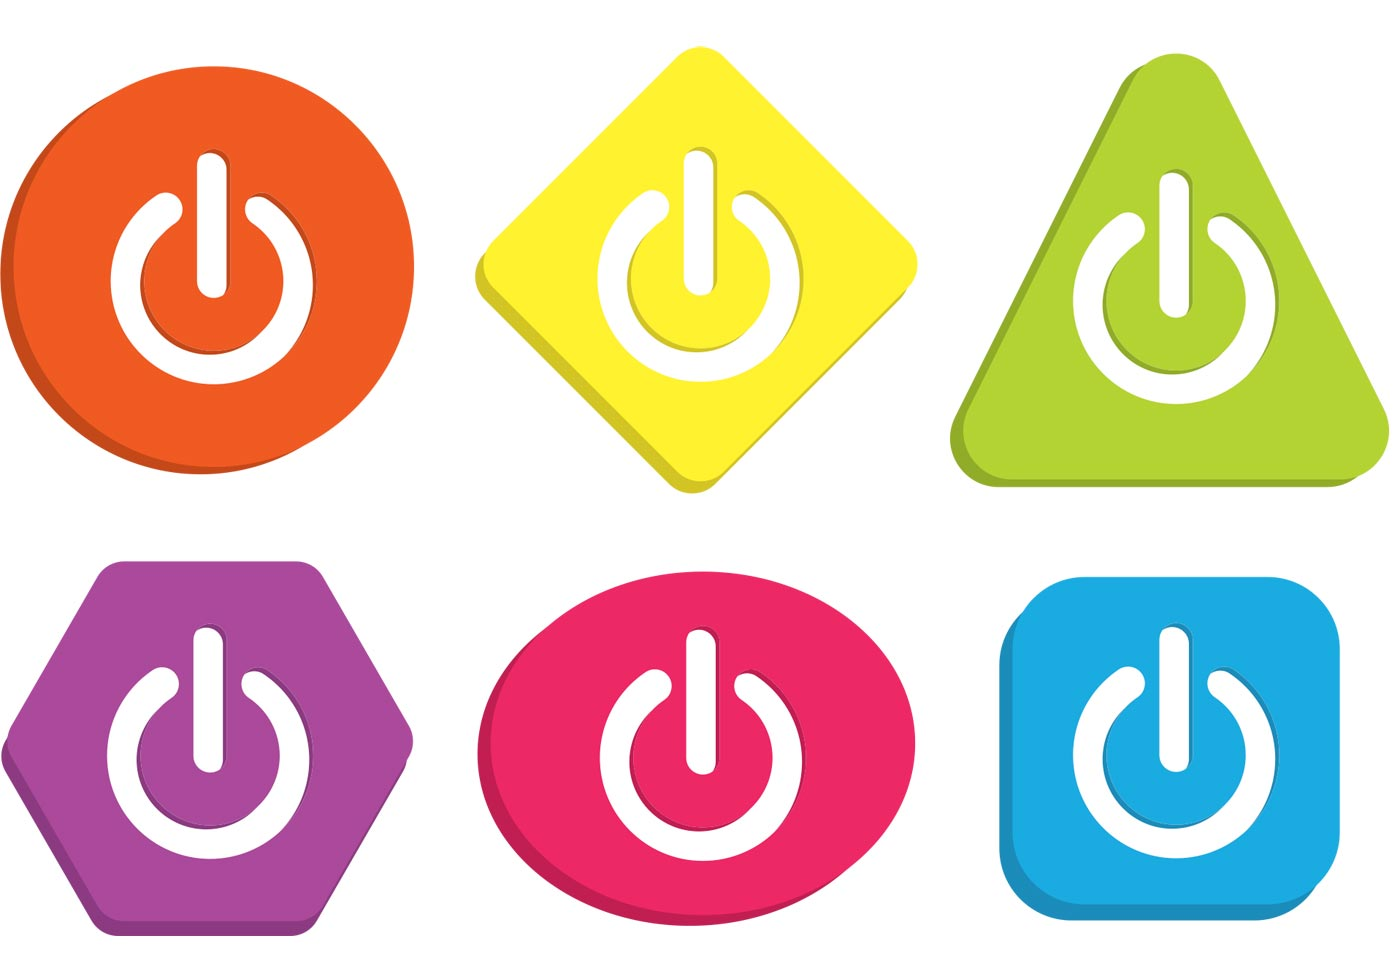 Colorful On Off Button Vectors Download Free Vector Art Stock And Graphics Images